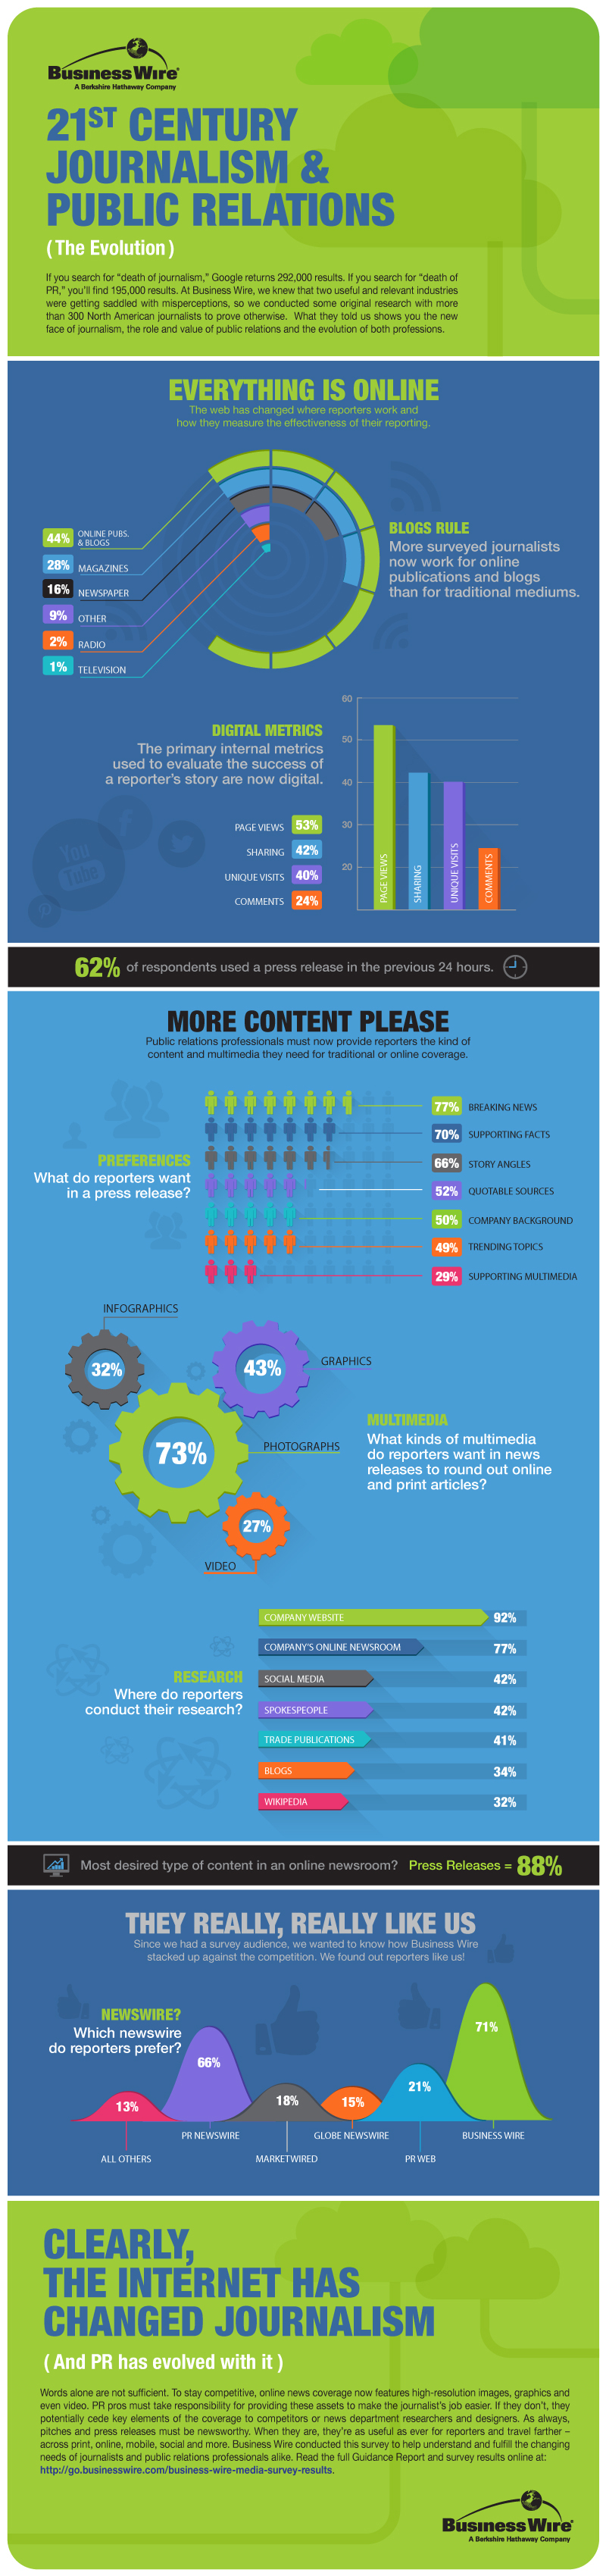 Survey Reveals Daily Use of Corporate Press Releases, Multimedia and ...